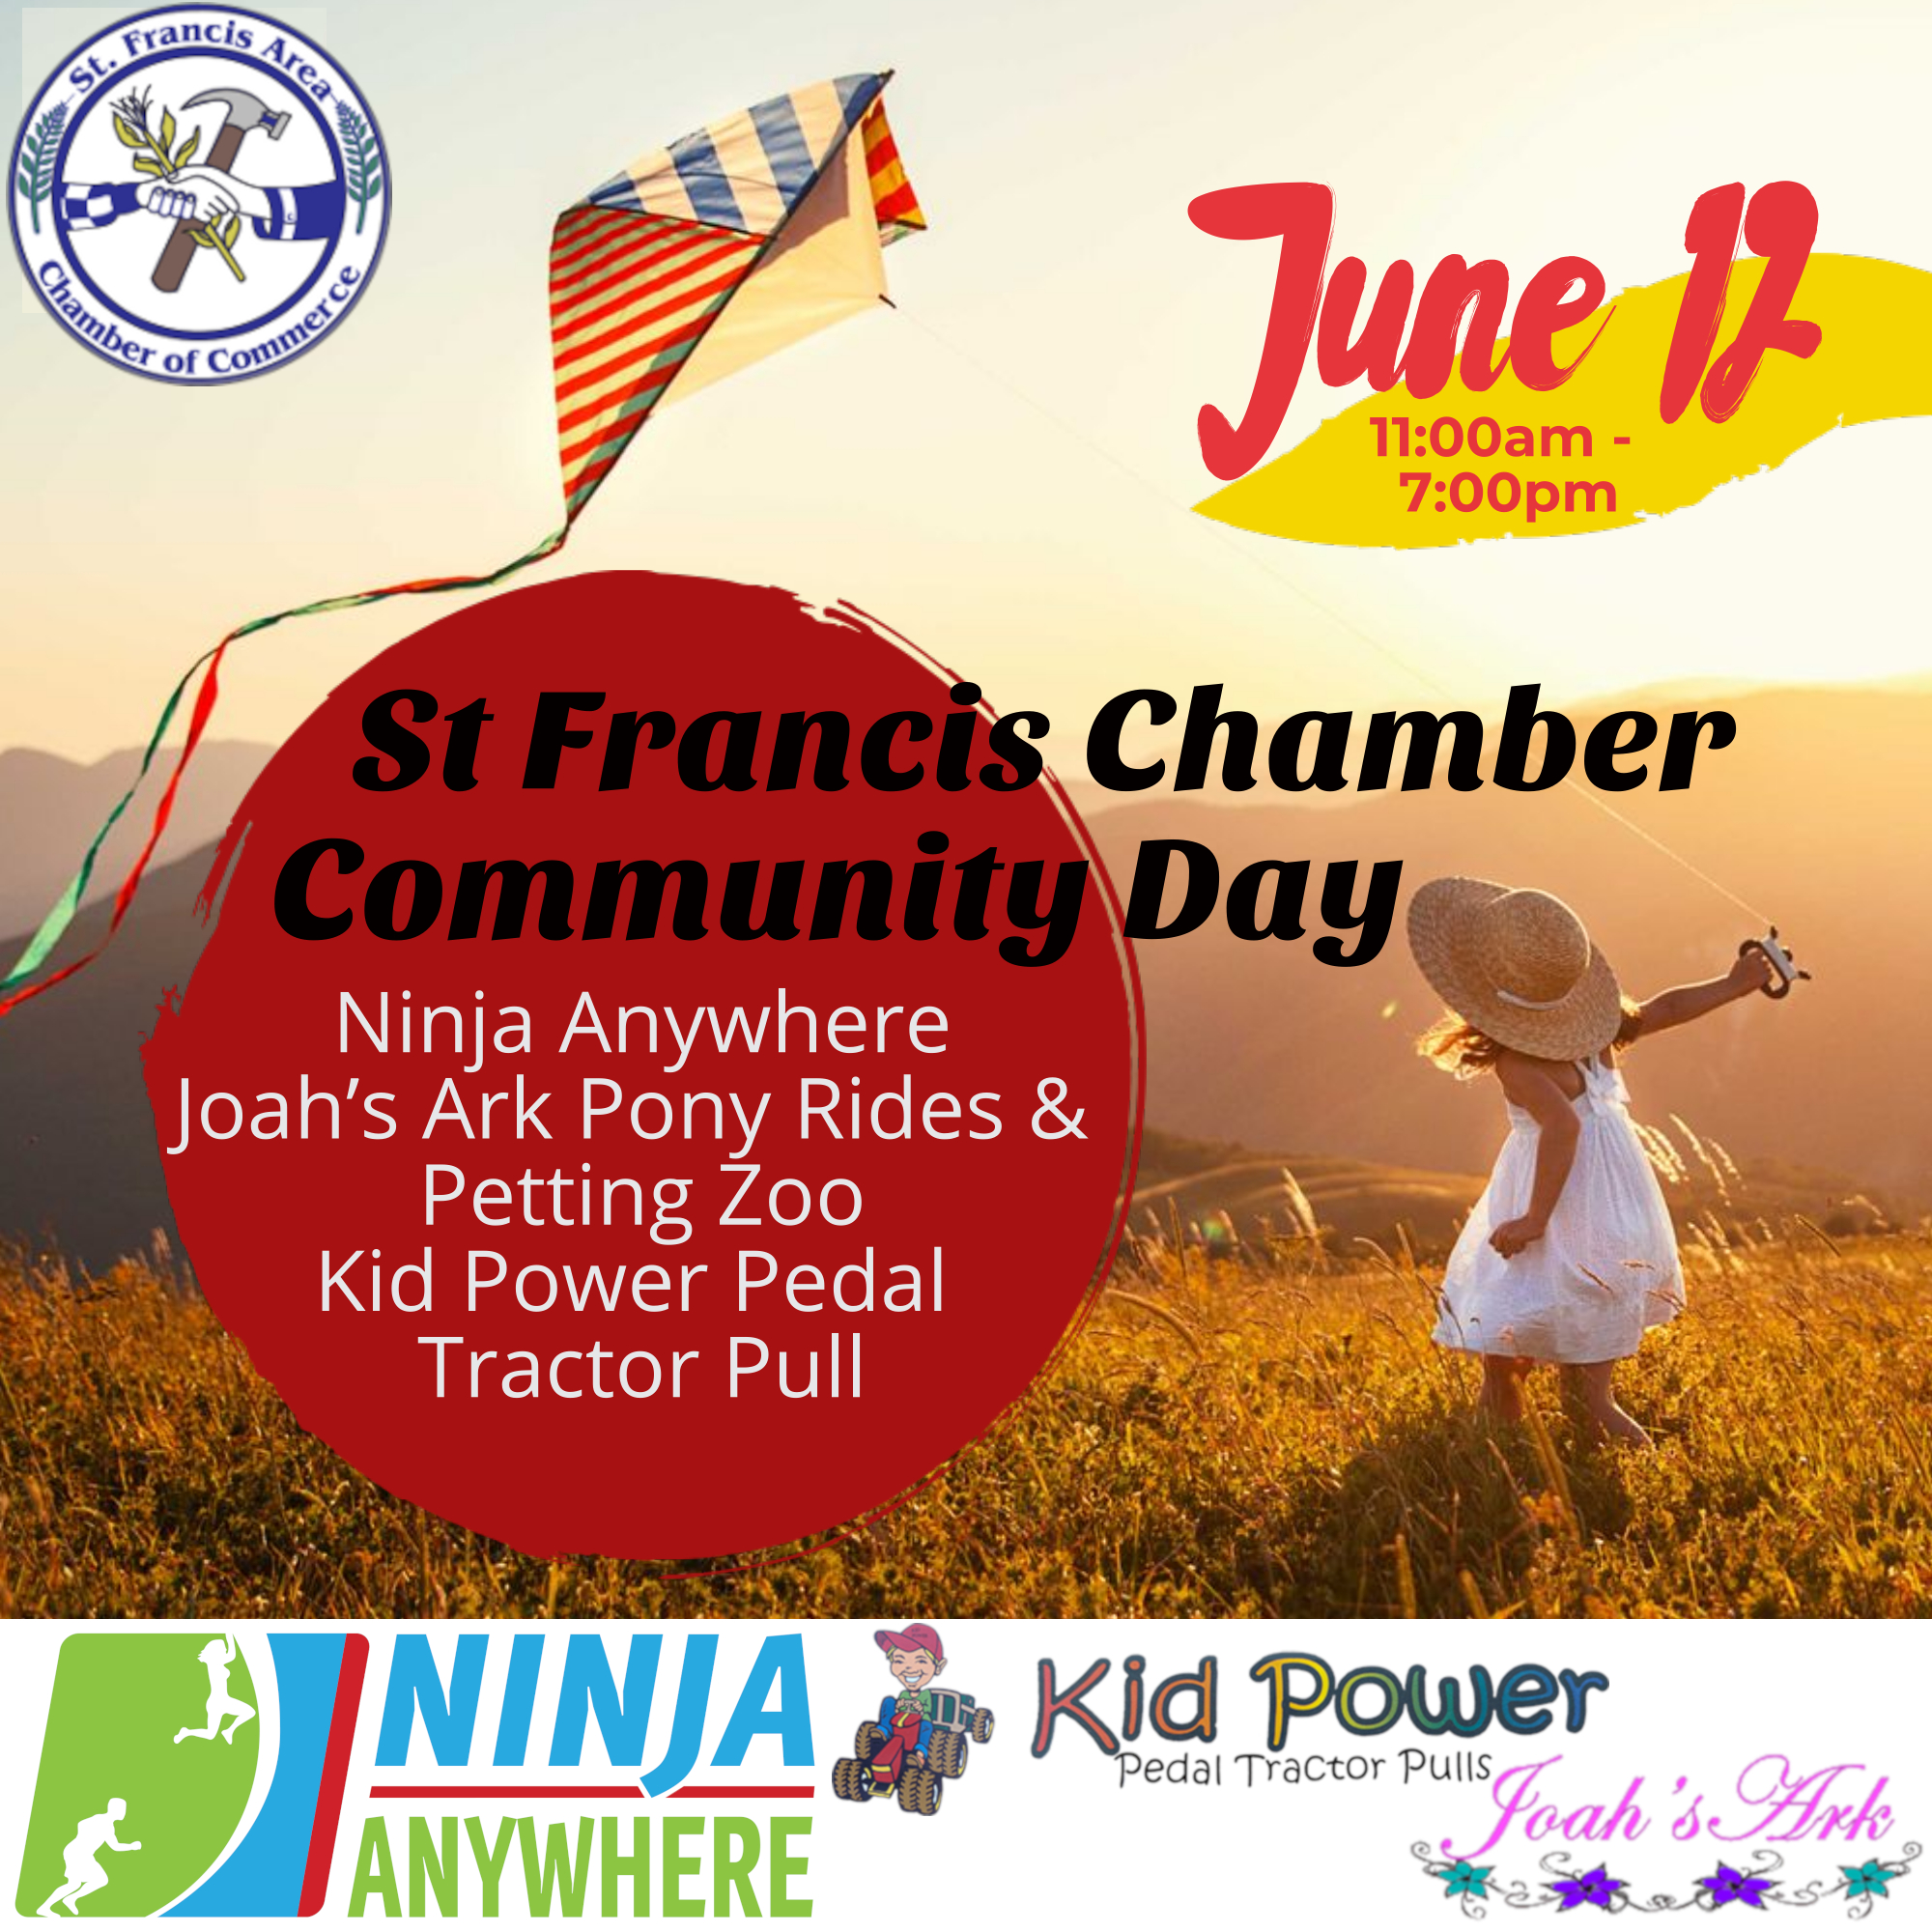 St. Francis Chamber Community Day